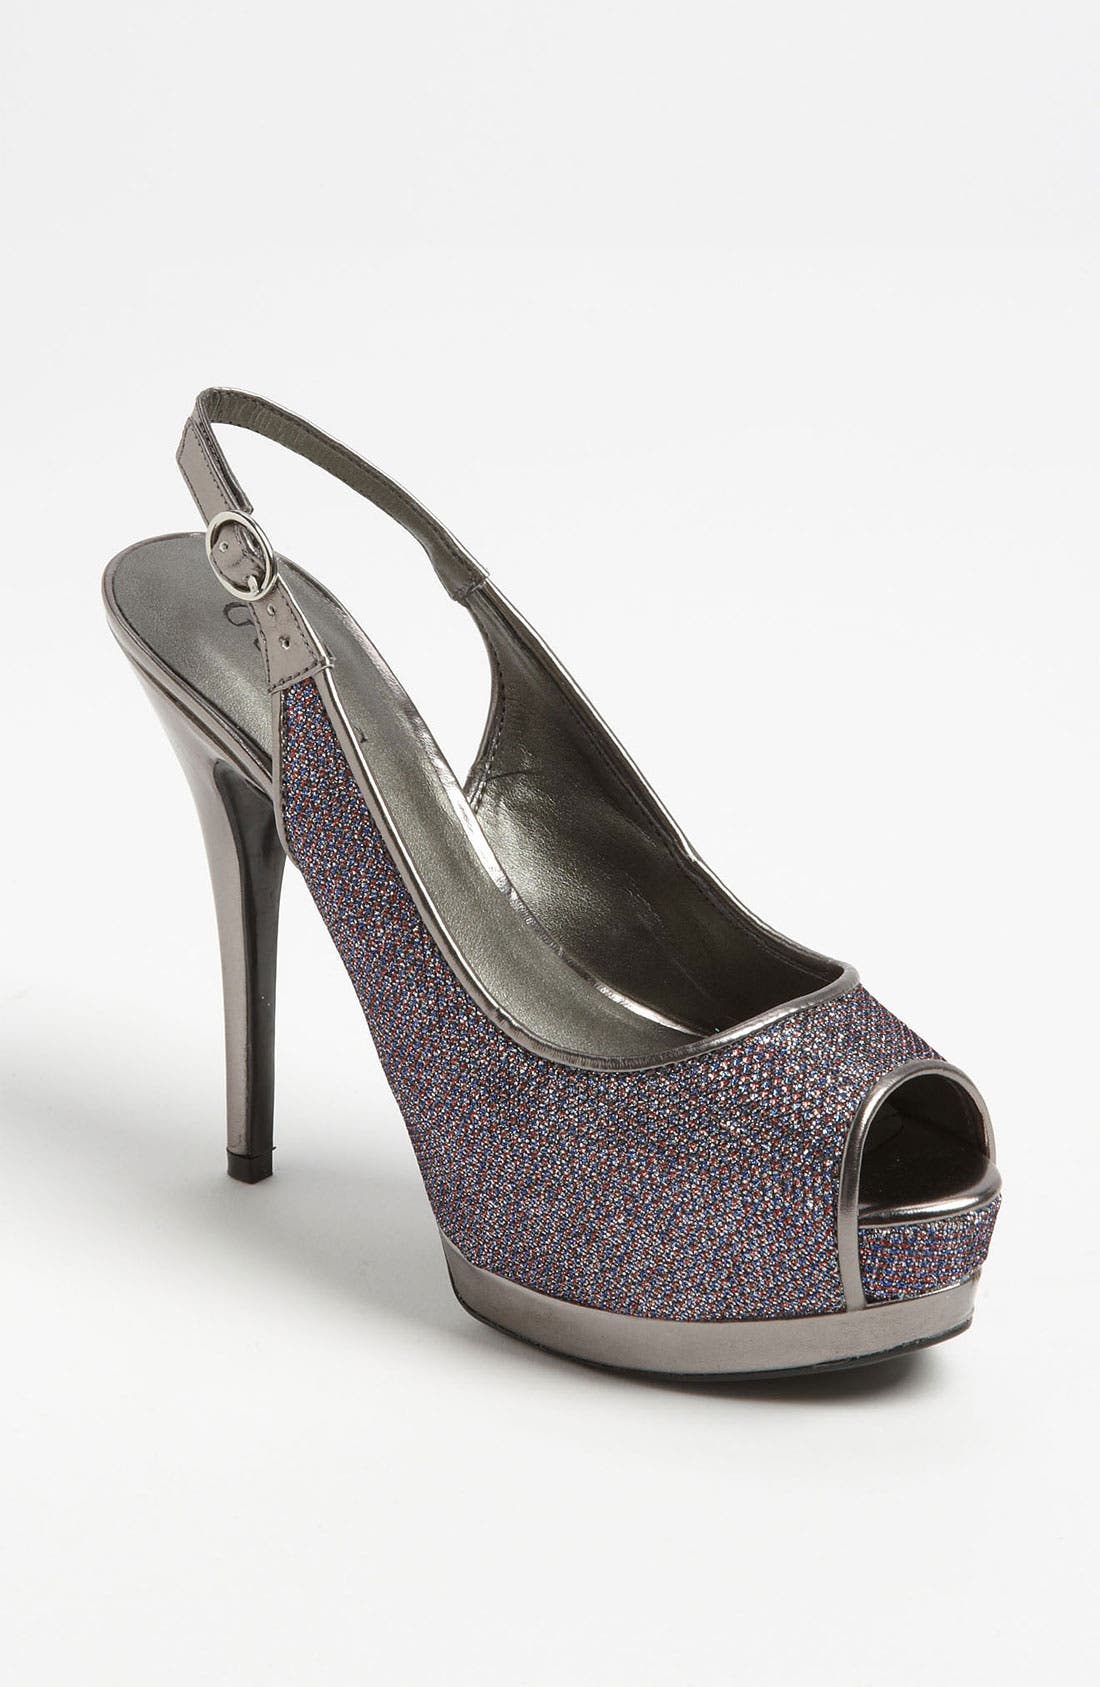 Alternate Image 1 Selected - GUESS 'Glenisa' Slingback Pump